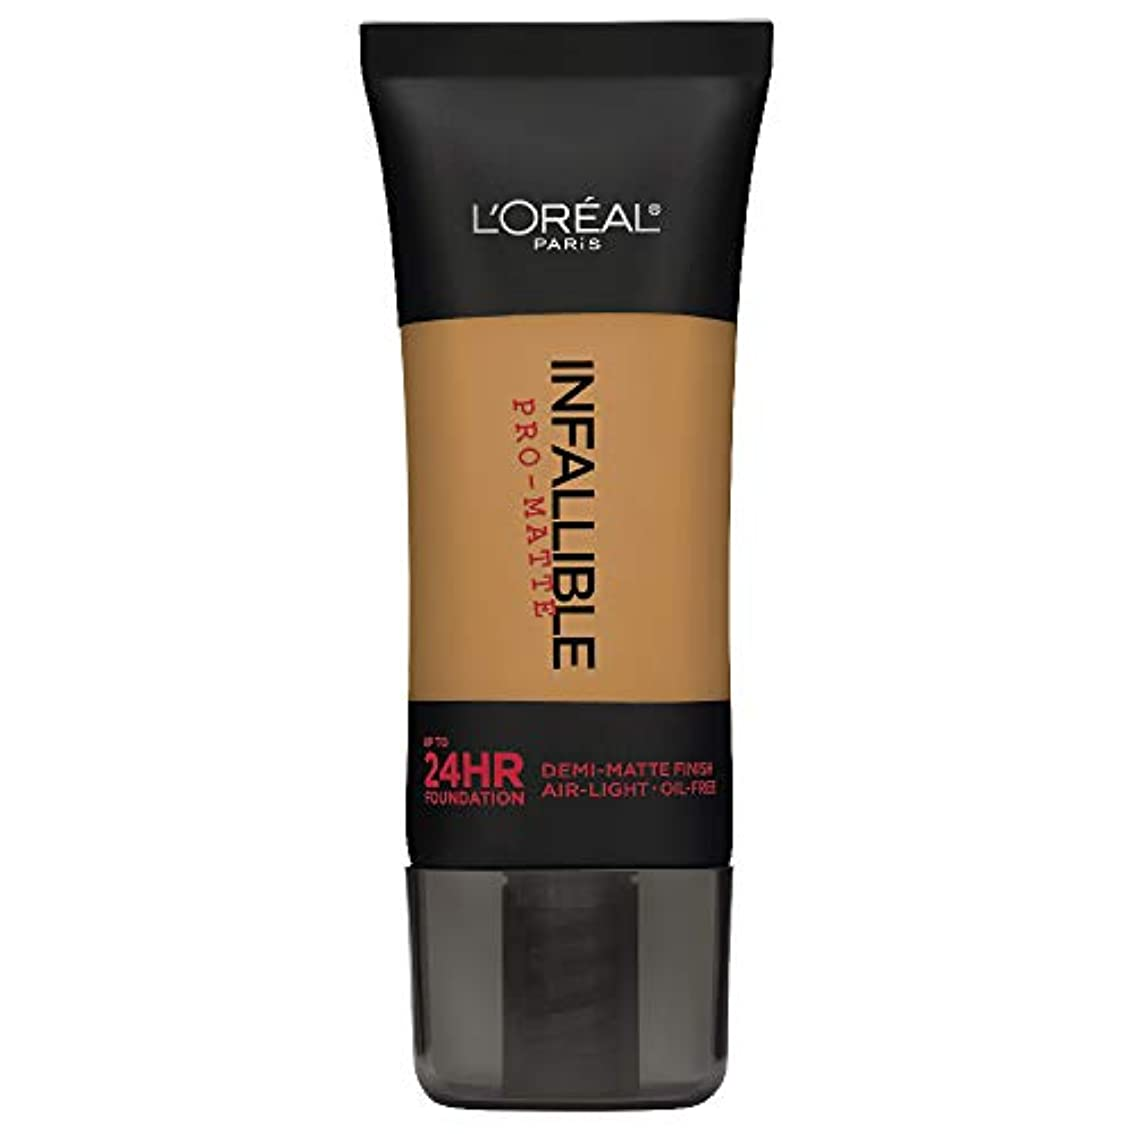 変色するよろめくファシズムL'Oreal Paris Infallible Pro-Matte Foundation Makeup, 109 Classic Tan, 1 fl. oz[並行輸入品]